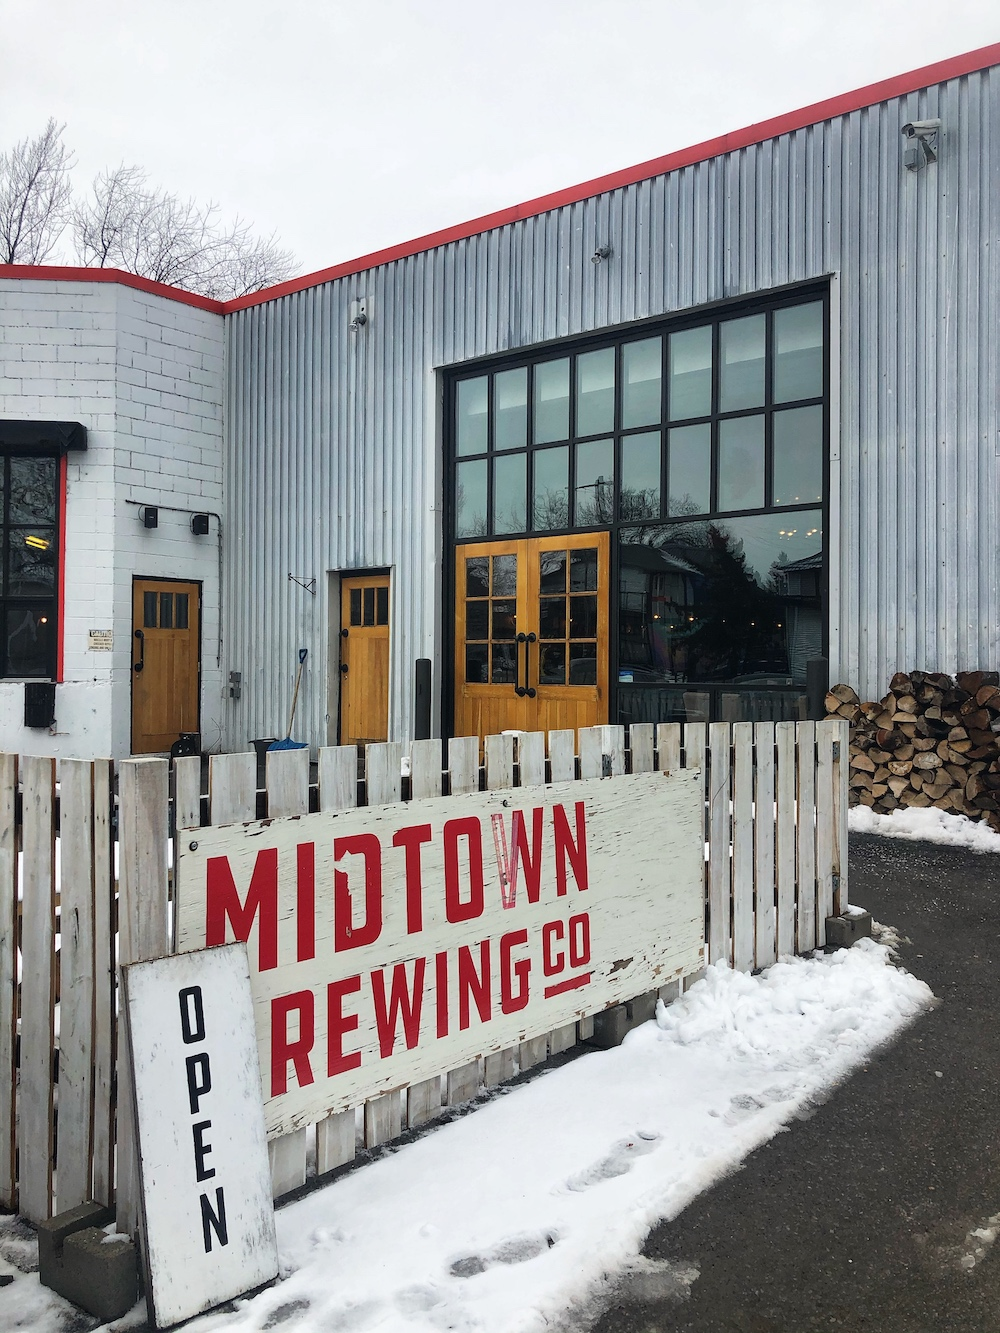 Midtown Brewing Co - 1